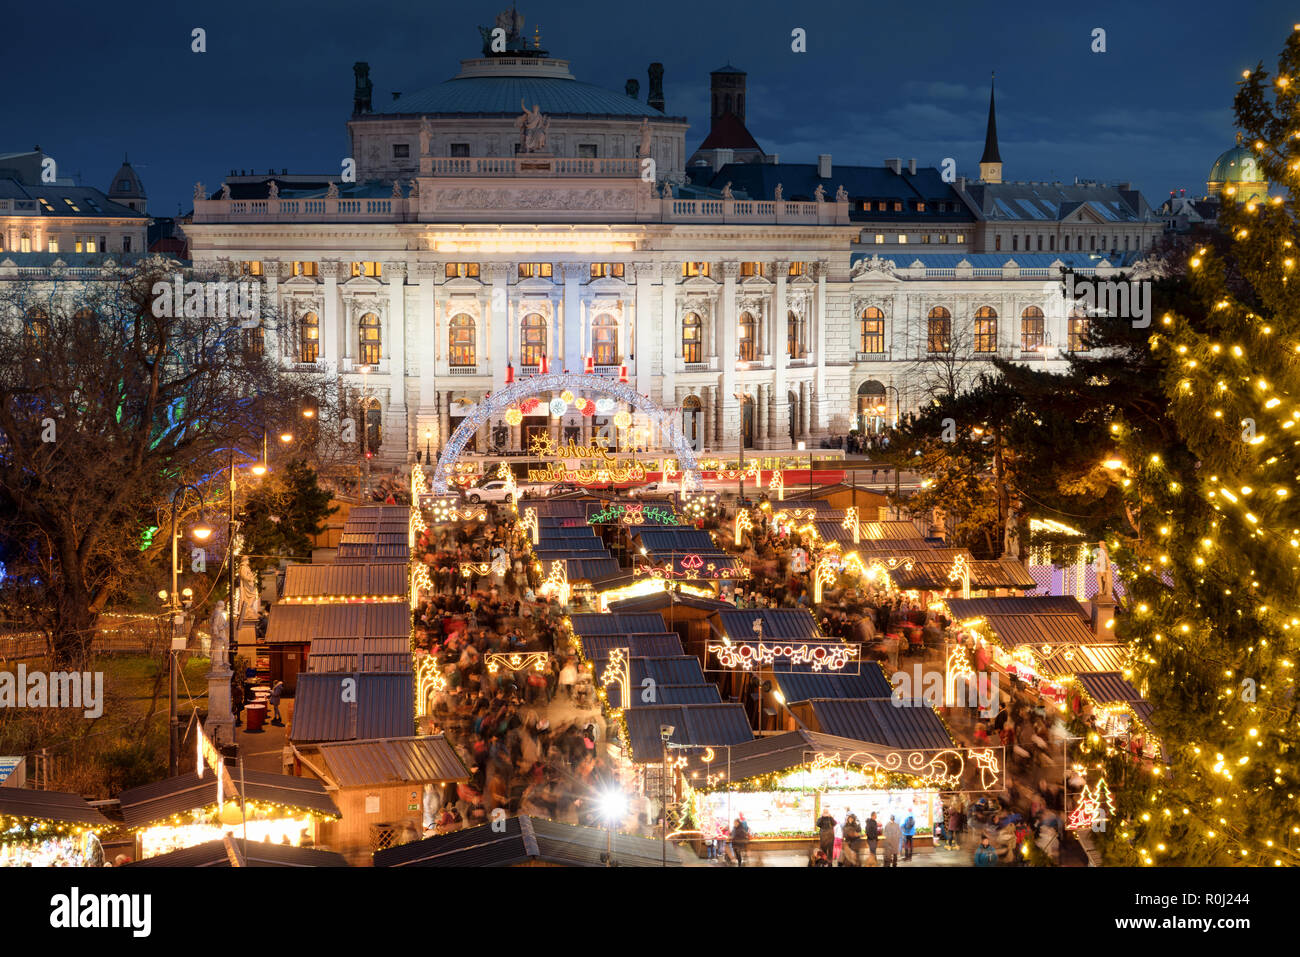 Vienna Christmas Market.Vienna Christmas Market In Front Of The Burgtheater And City